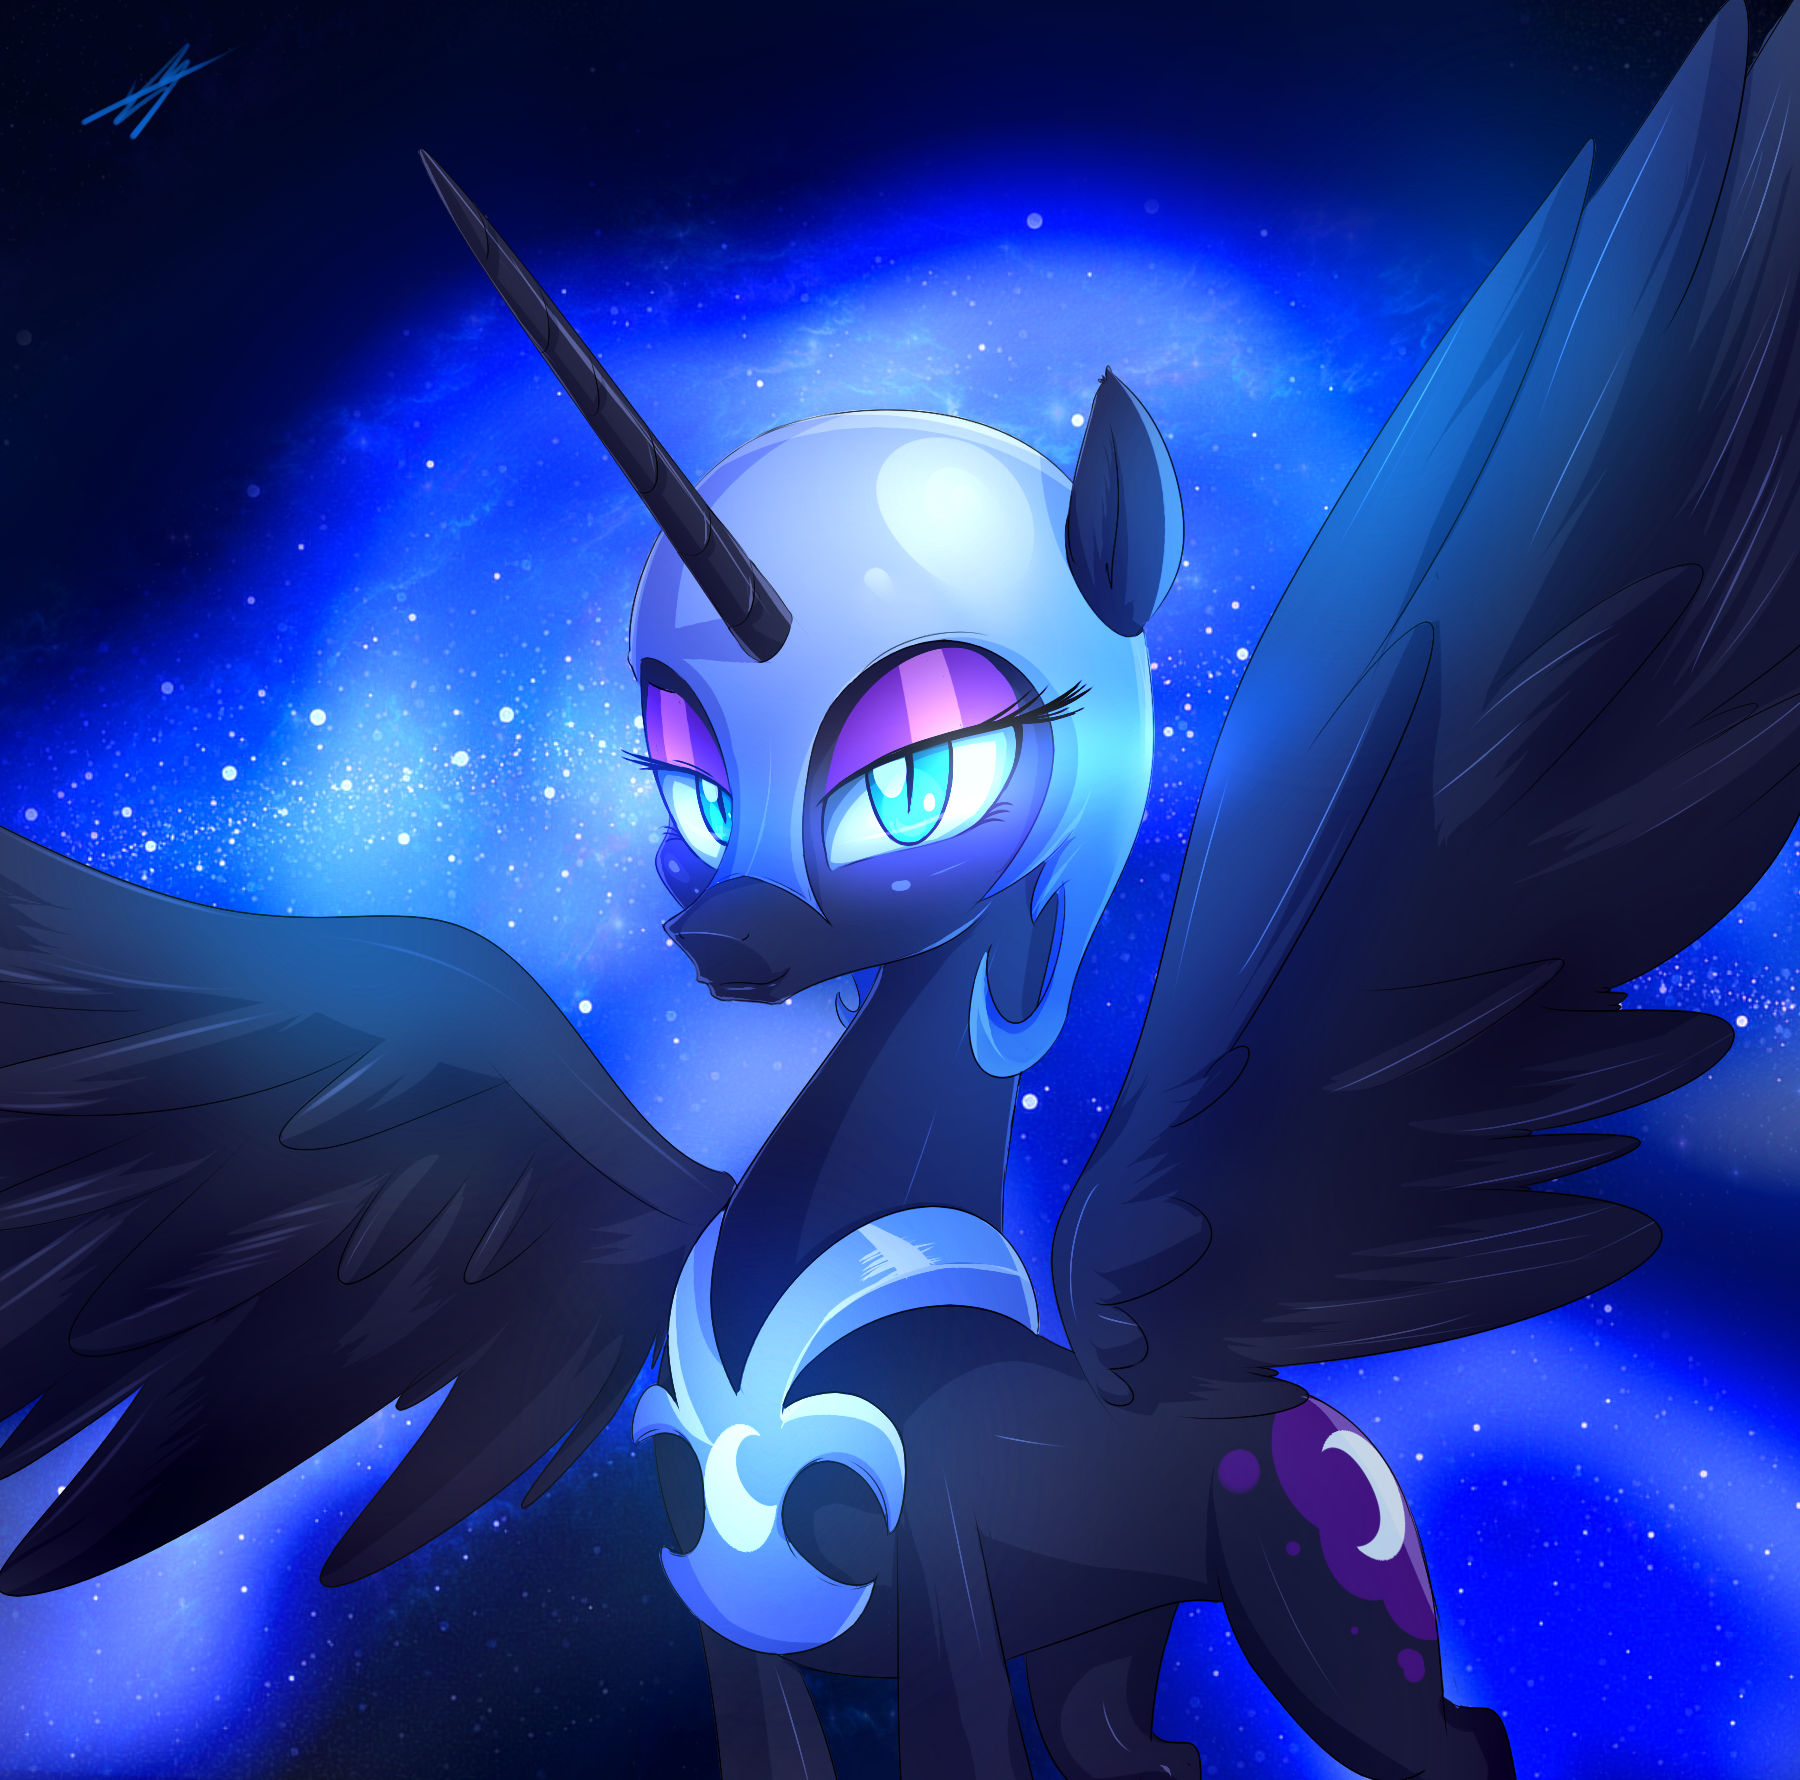 Official Nightmare Moon Art Thread Nightmare Moon Is The Best Pony Fimfiction